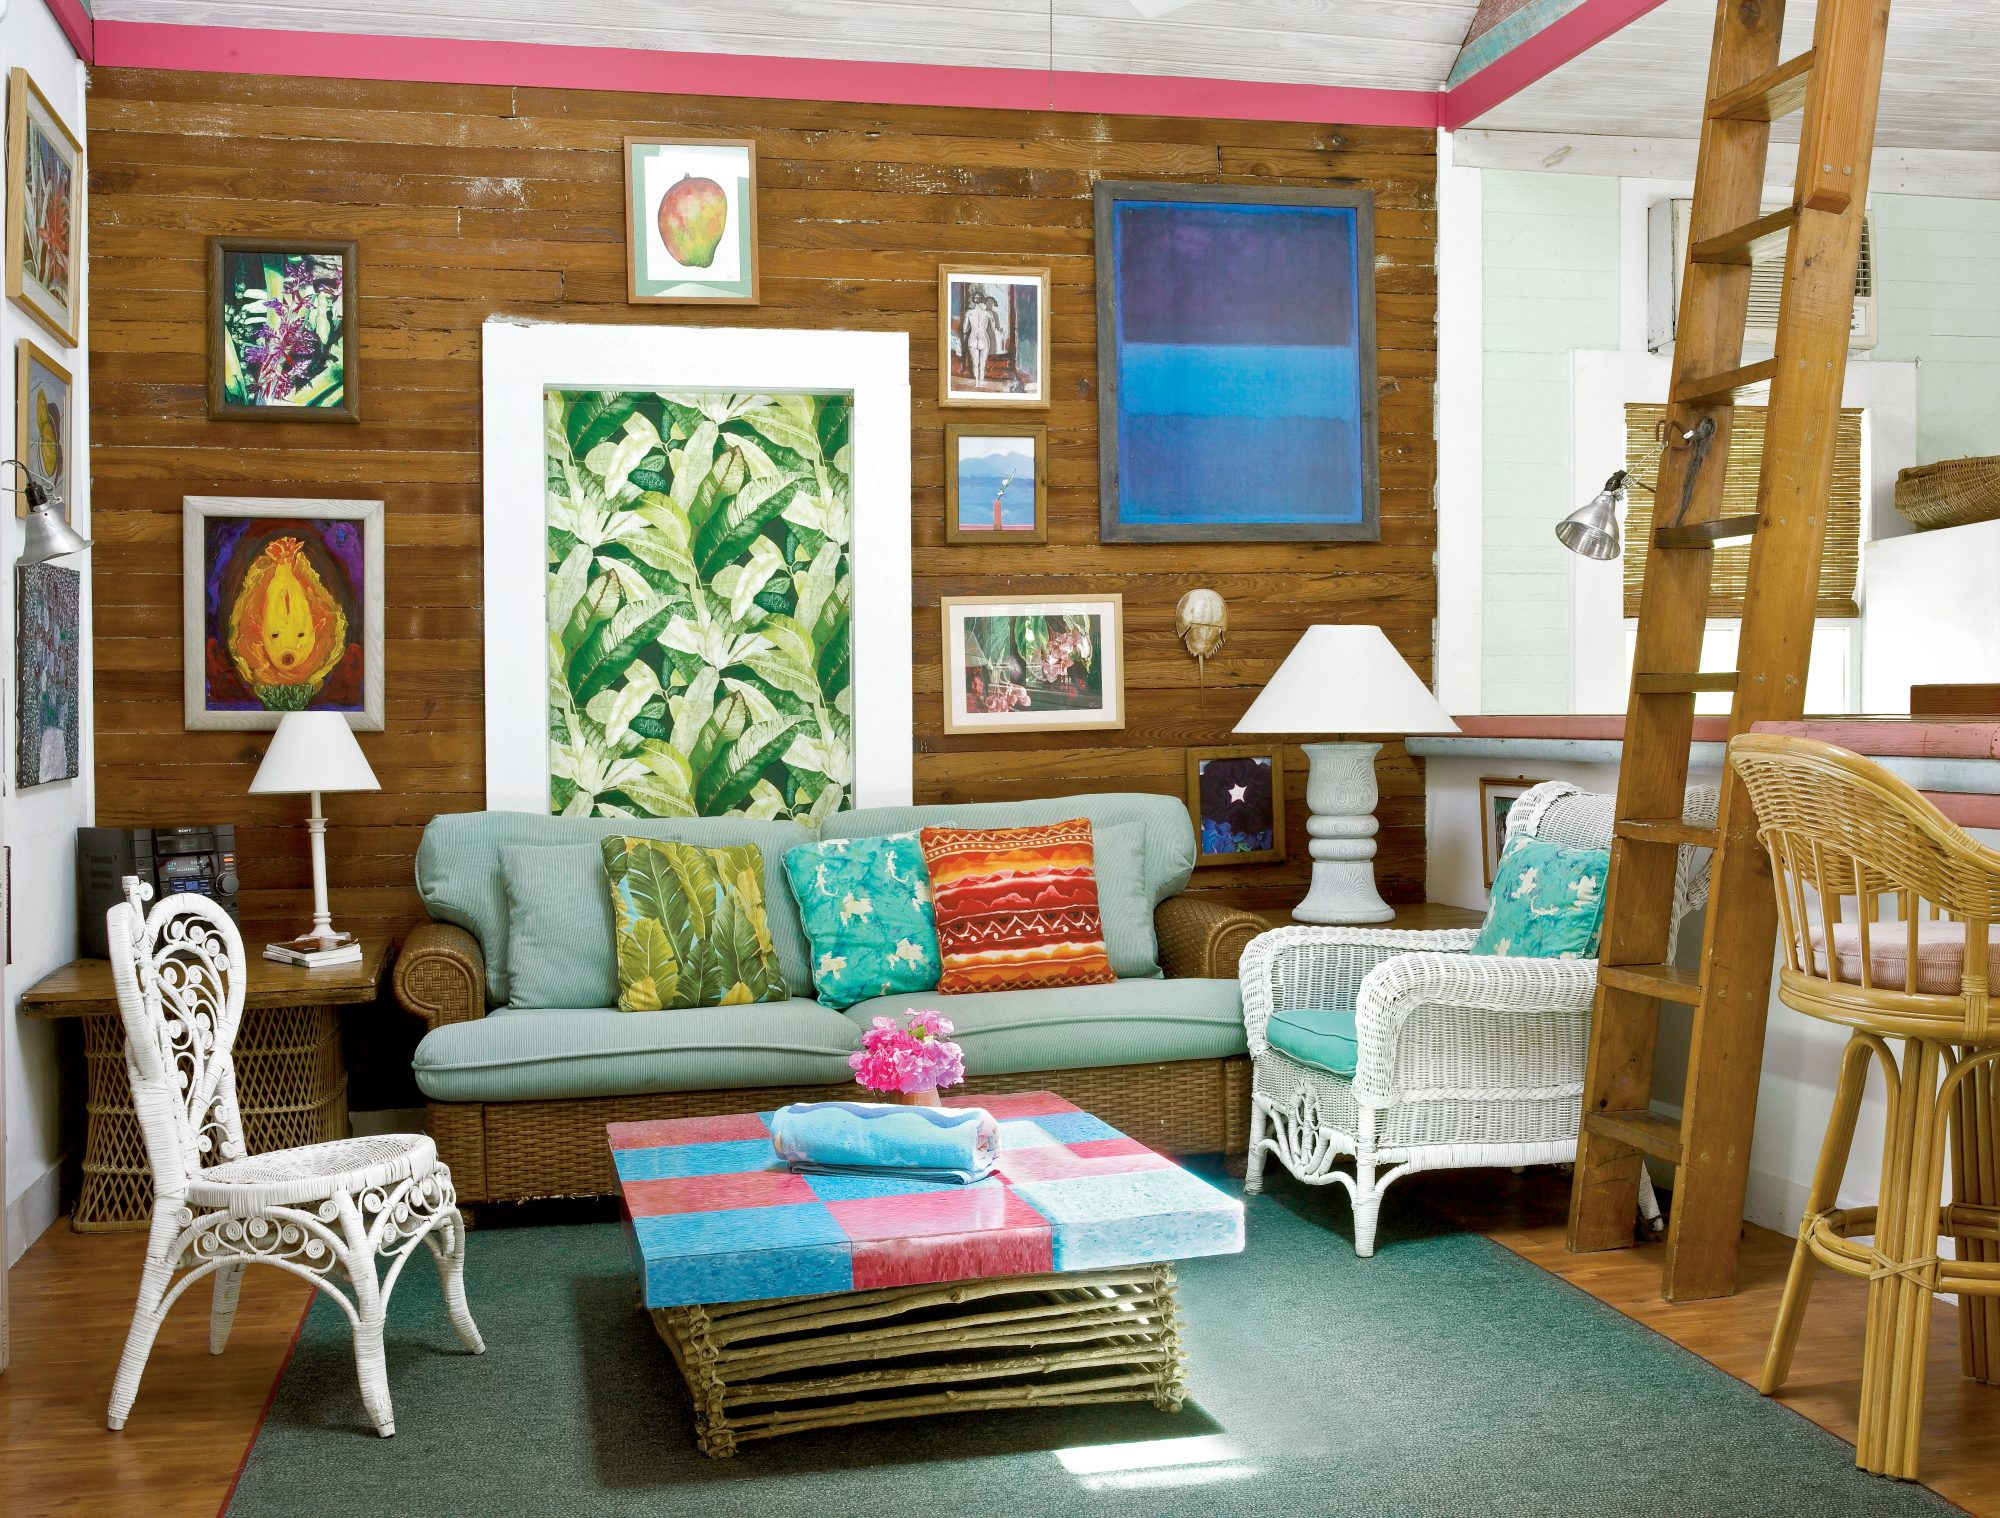 Natural pine floors, walls, and ceilings preserves the cottage's retro, lived-in look. Vintage furniture adds to the casual feel.